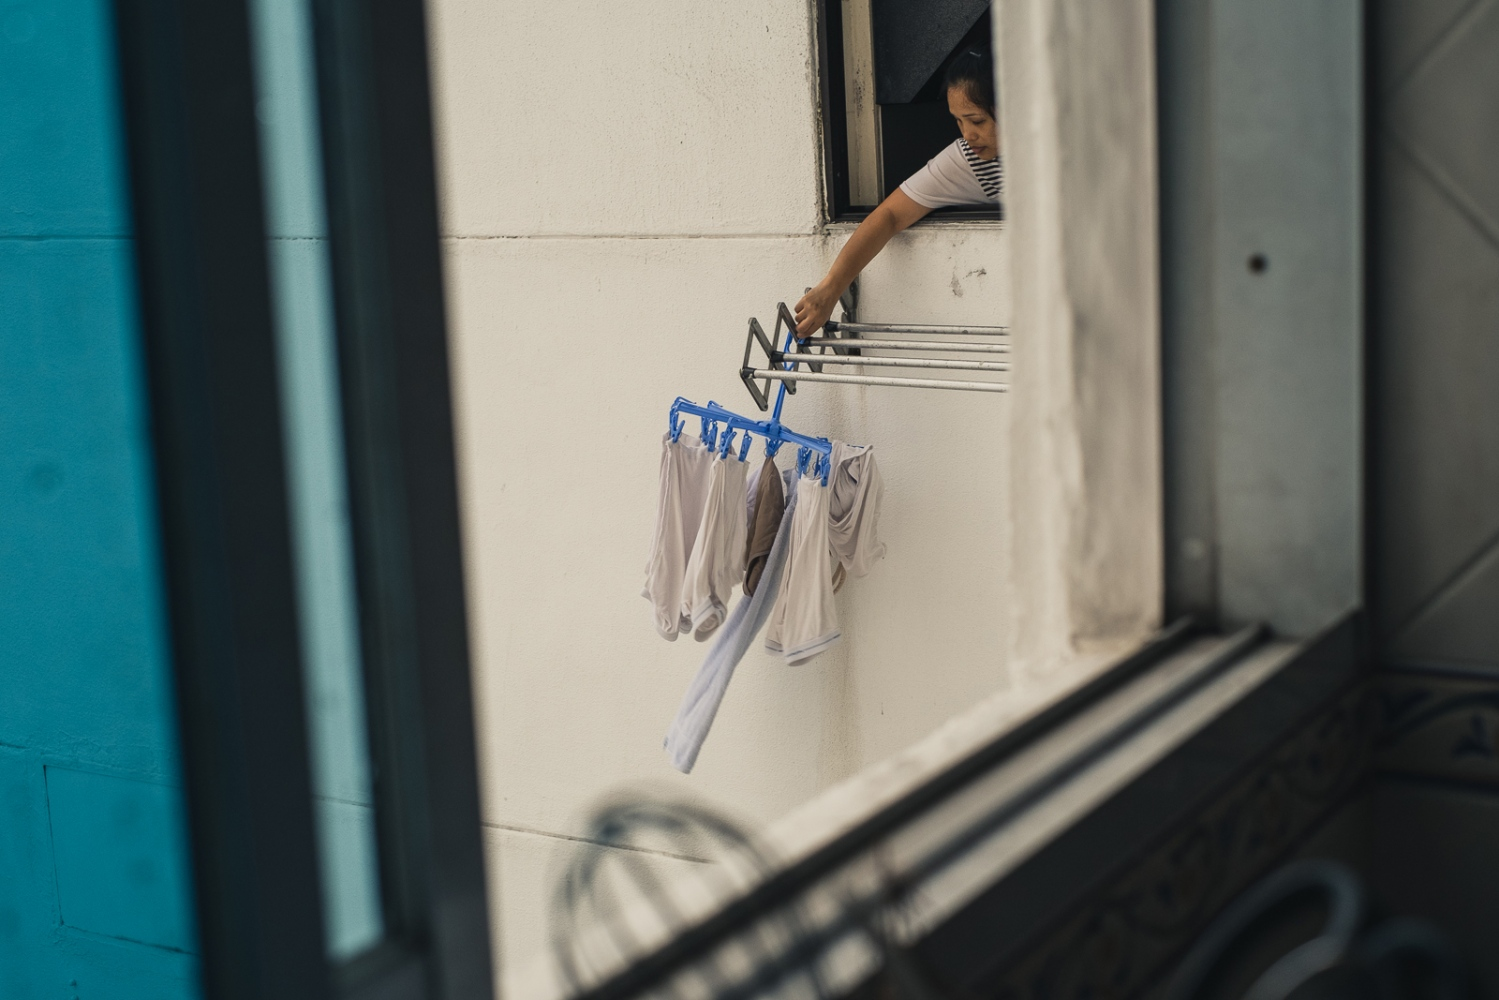 A Foreign domestic worker hangs washing from the window of a condo in Singapore. Foreign domestic workers are required by Singapore law to live with their employers.